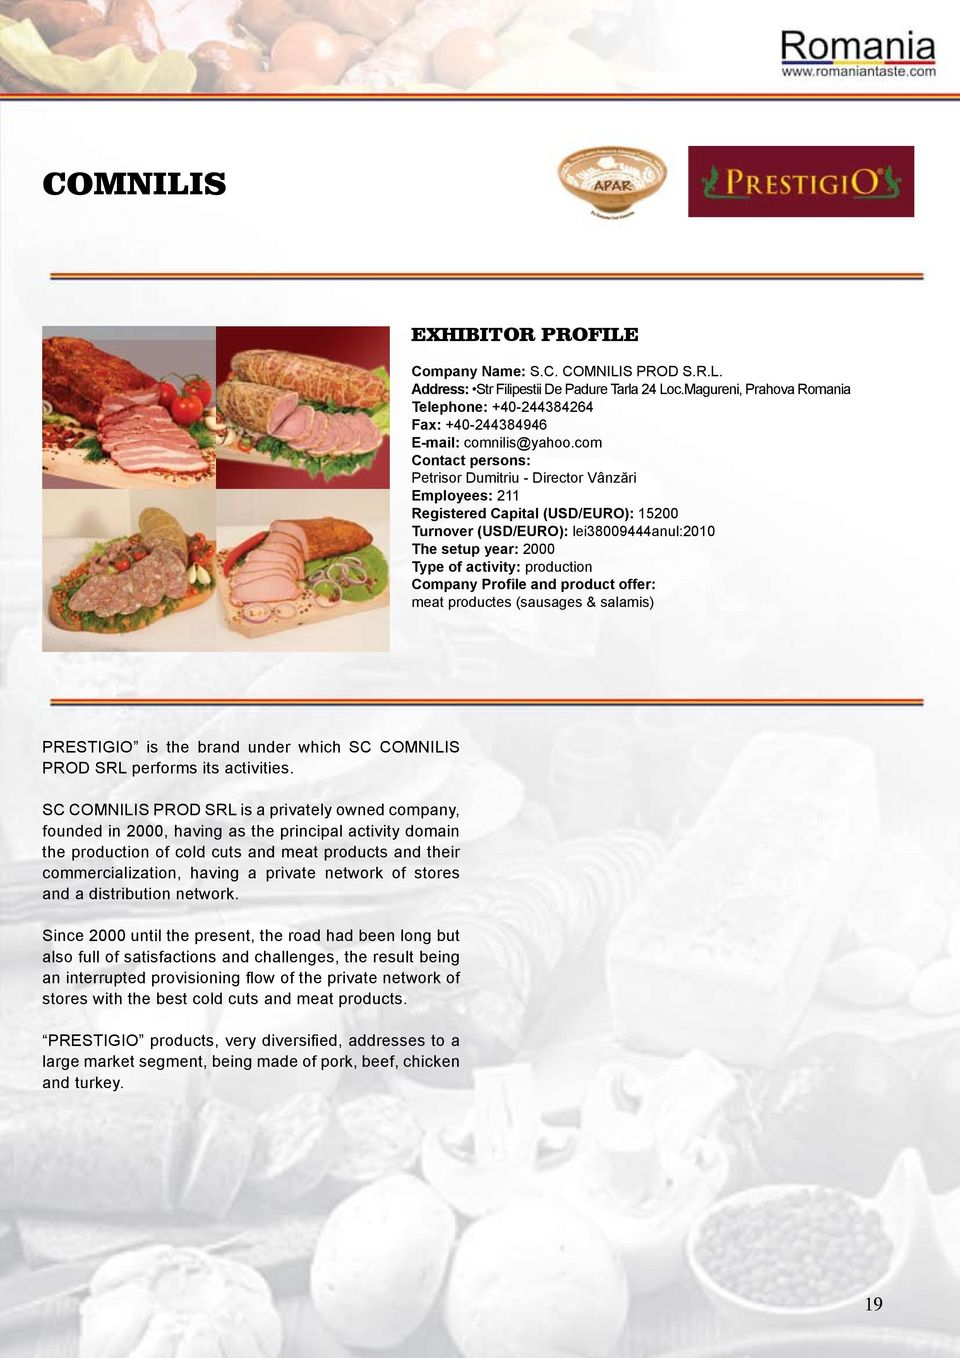 Profile and product offer: meat productes (sausages & salamis) PRESTIGIO is the brand under which SC COMNILIS PROD SRL performs its activities.